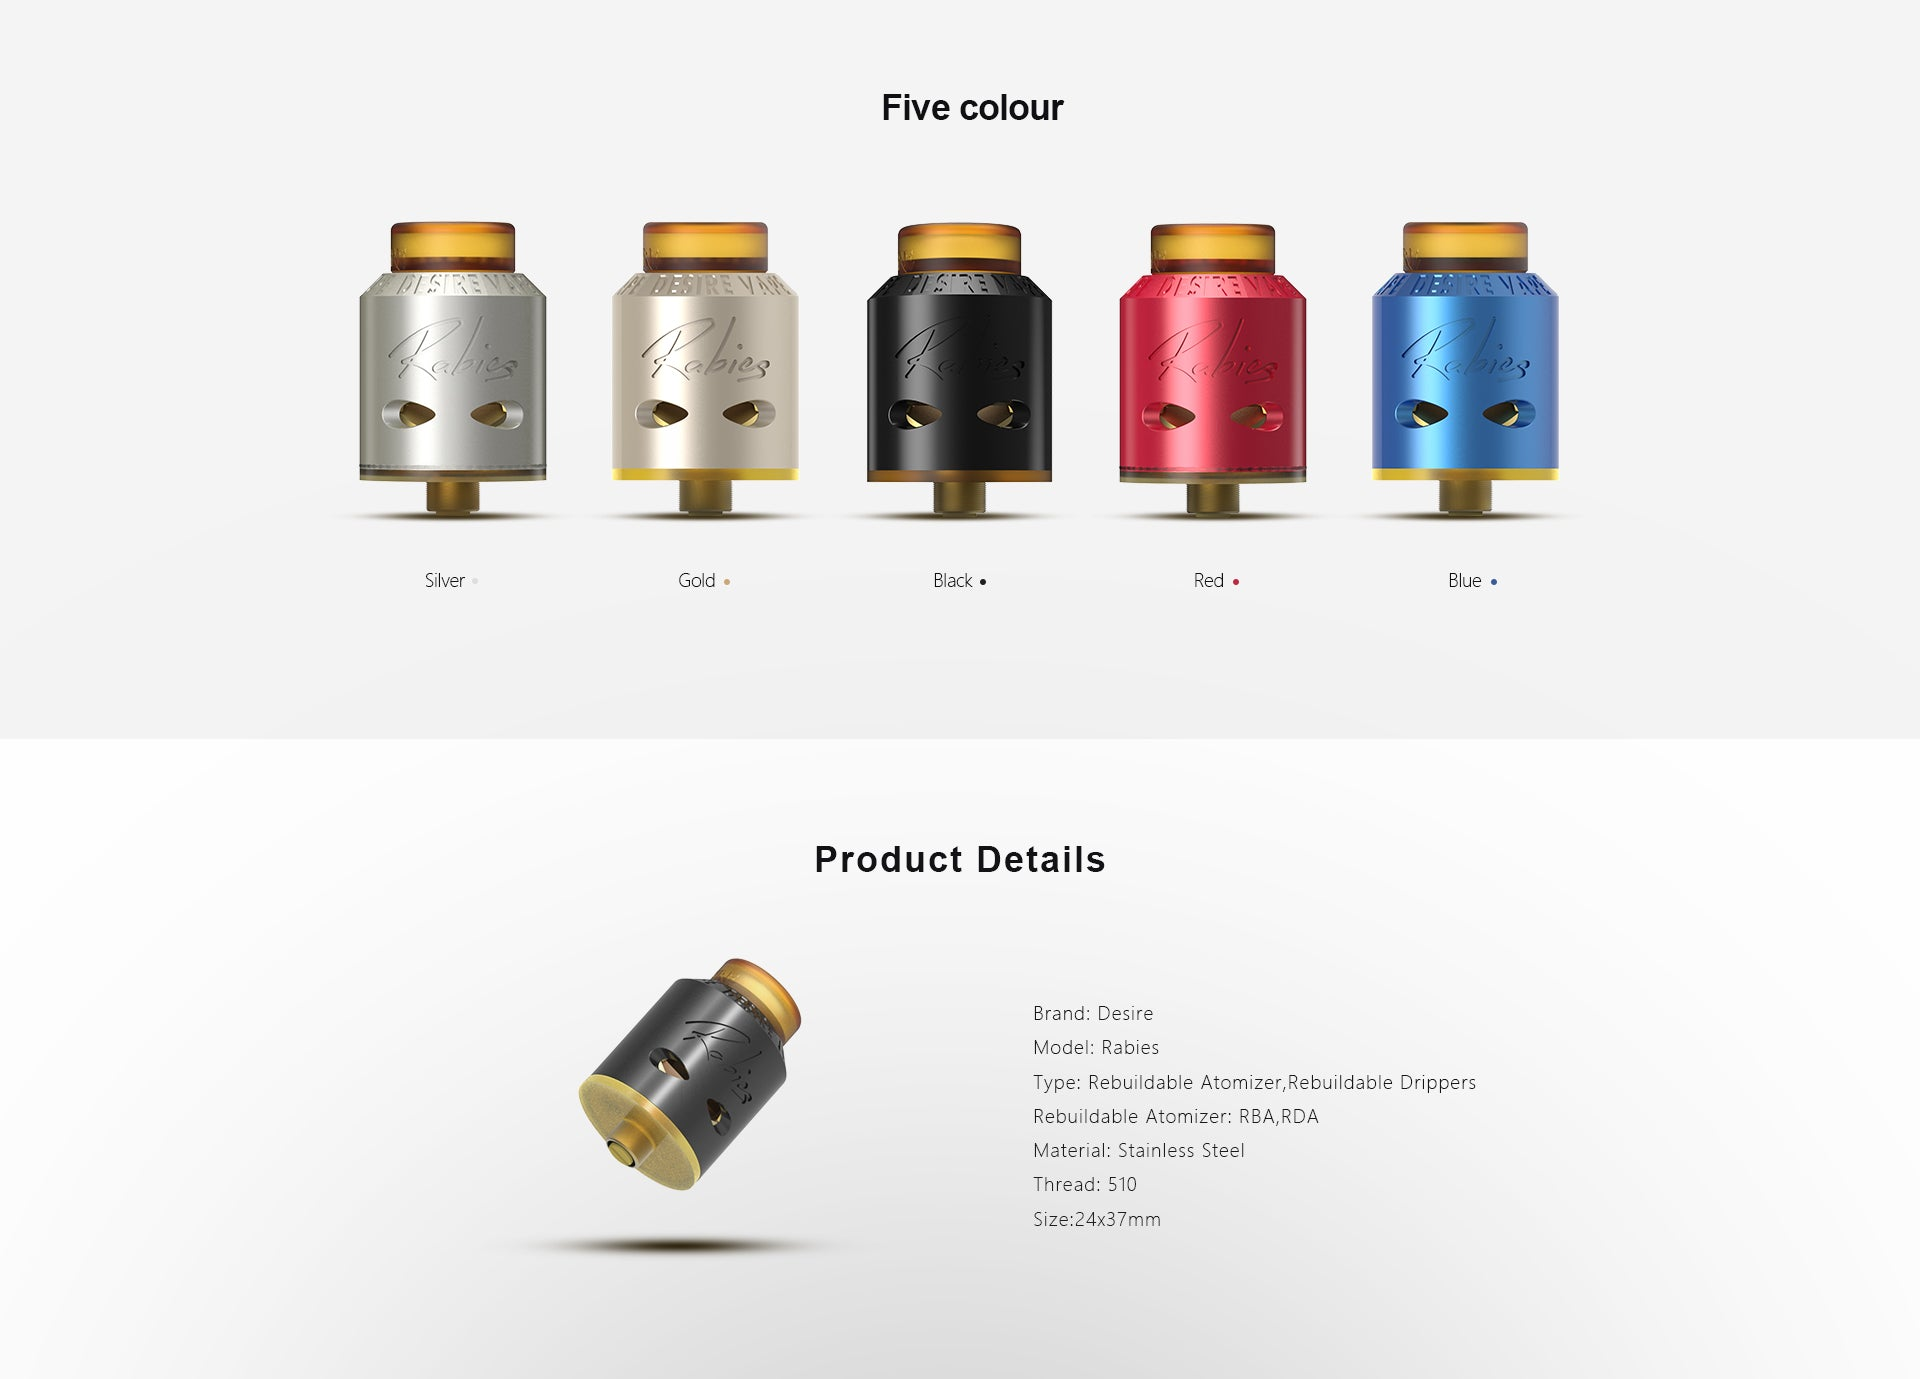 Product Details                                              Brand: Desire  Model: Rabies  Type: Rebuildable Atomizer,Rebuildable Drippers  Rebuildable Atomizer: RBA,RDA  Material: Stainless Steel  Thread: 510  Size:24x37mm